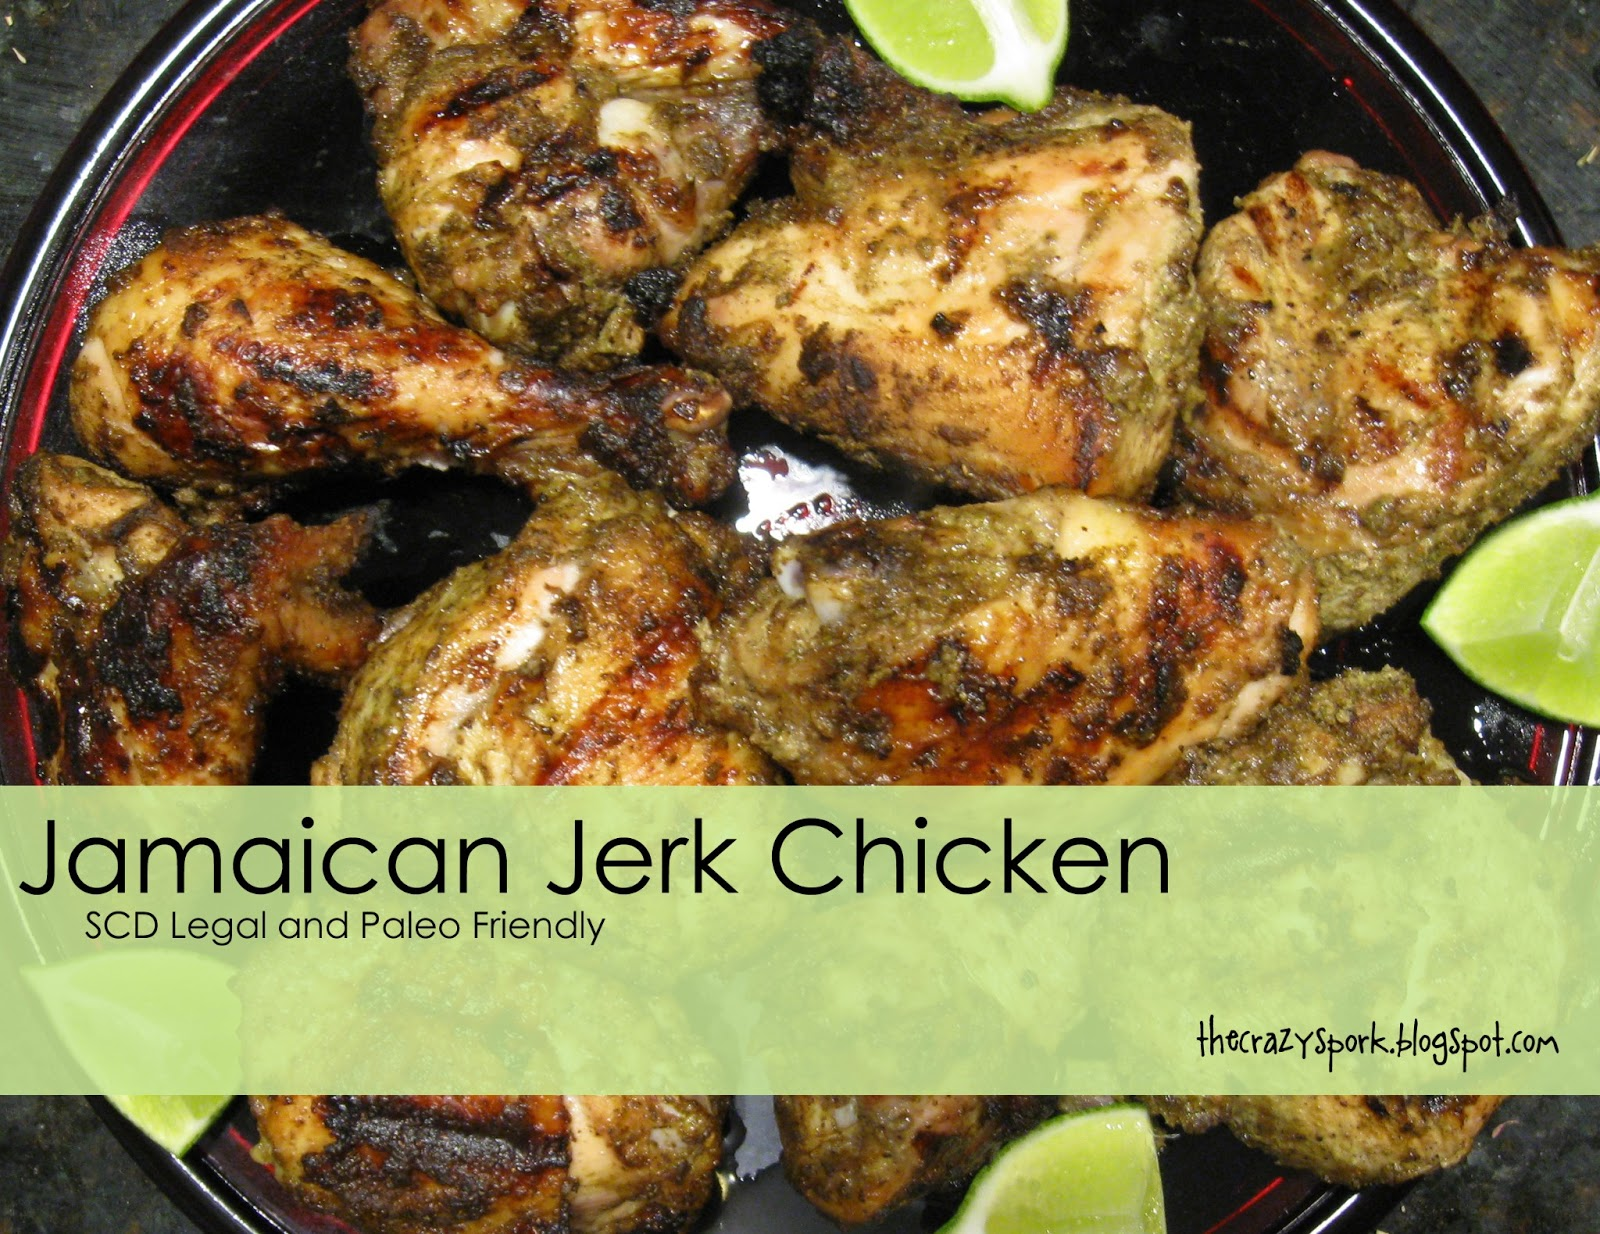 The Crazy Spork: Jamaican Jerk Chicken - SCD Legal and Paleo Friendly